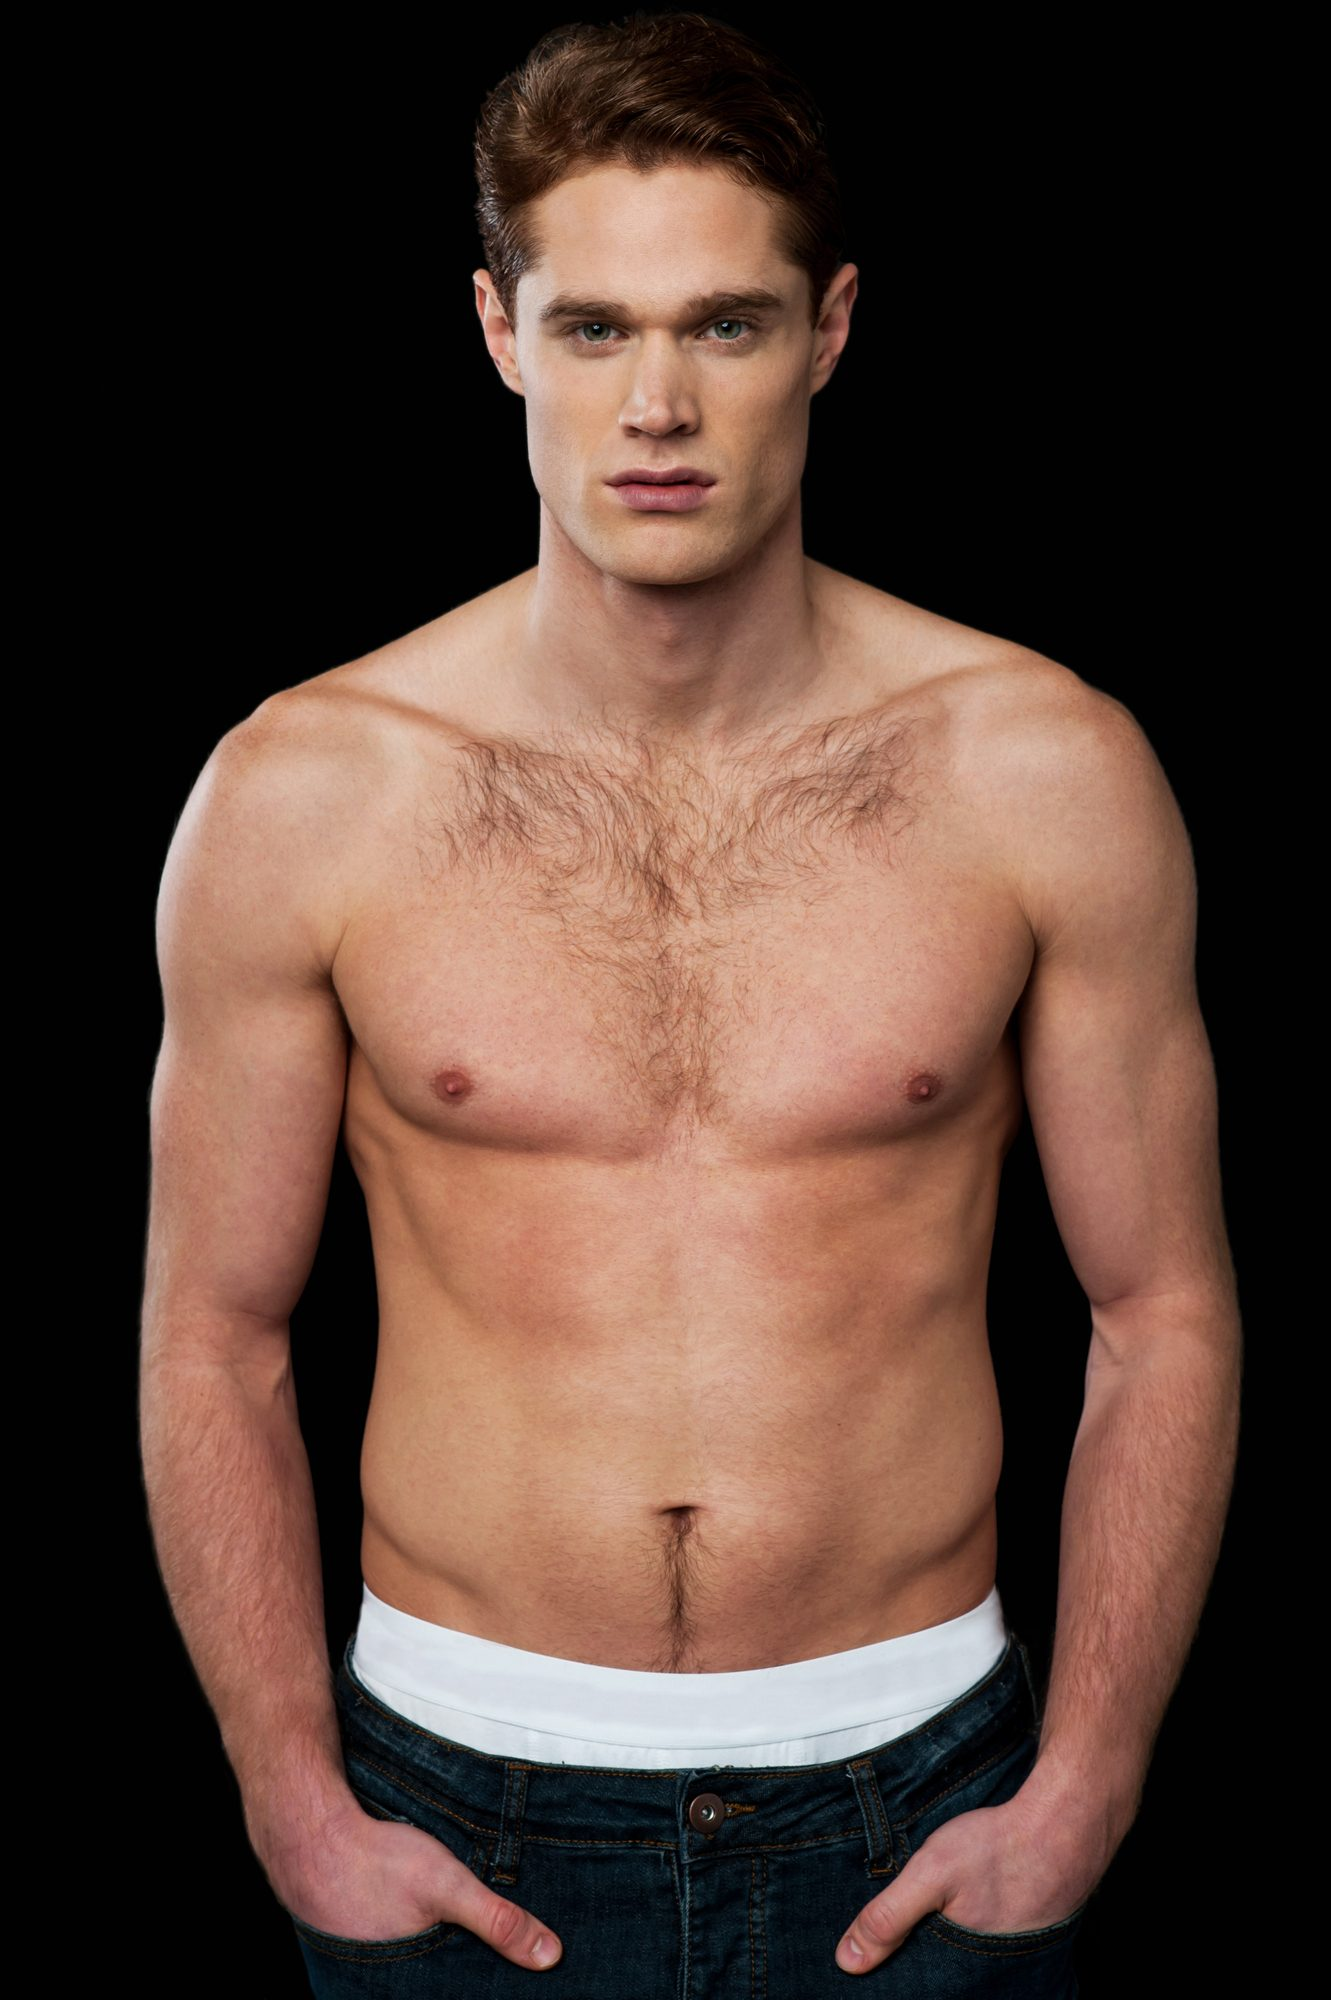 Shirtless male model with muscular body